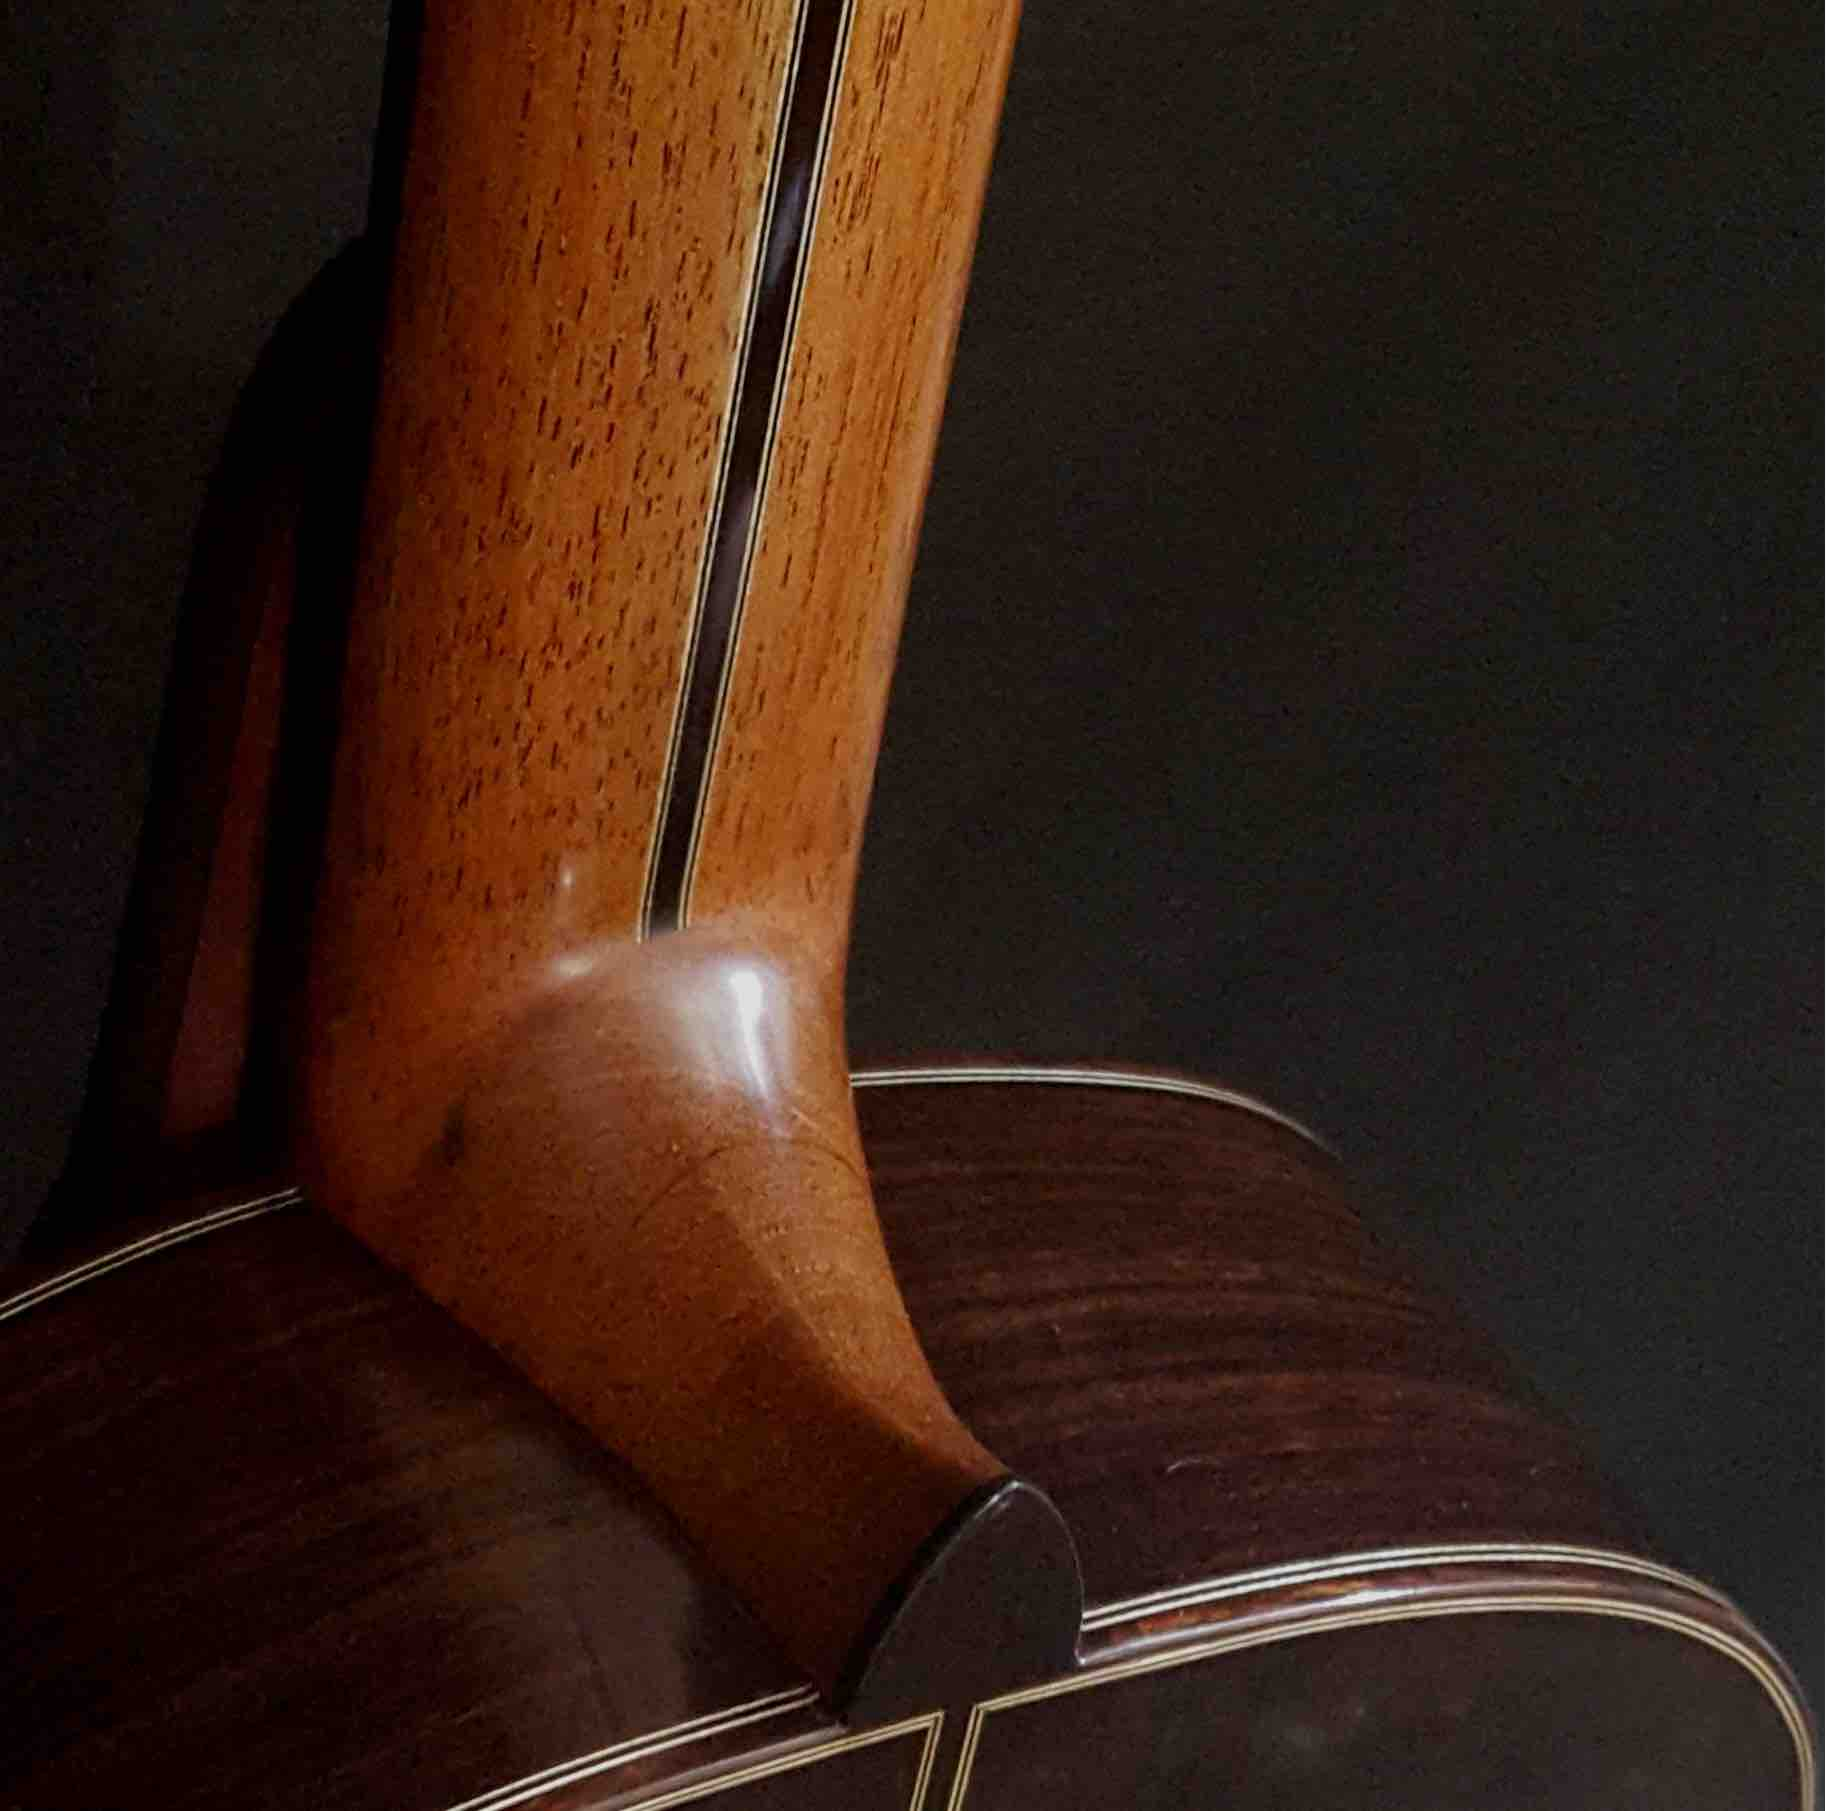 back-guitar-rosewood